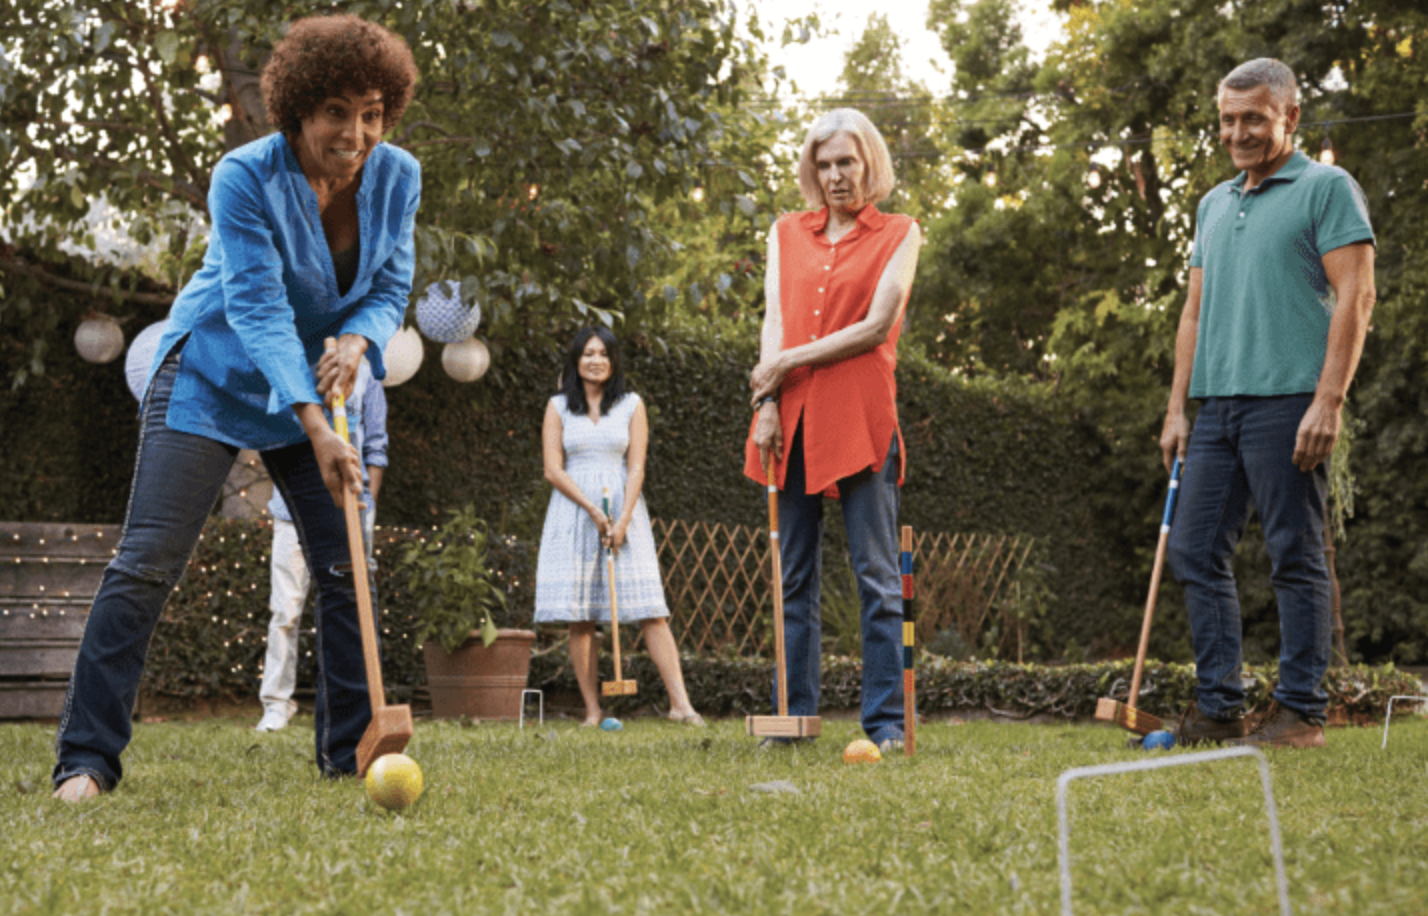 Win Retro Lawn Games in this Month's Sweepstakes!